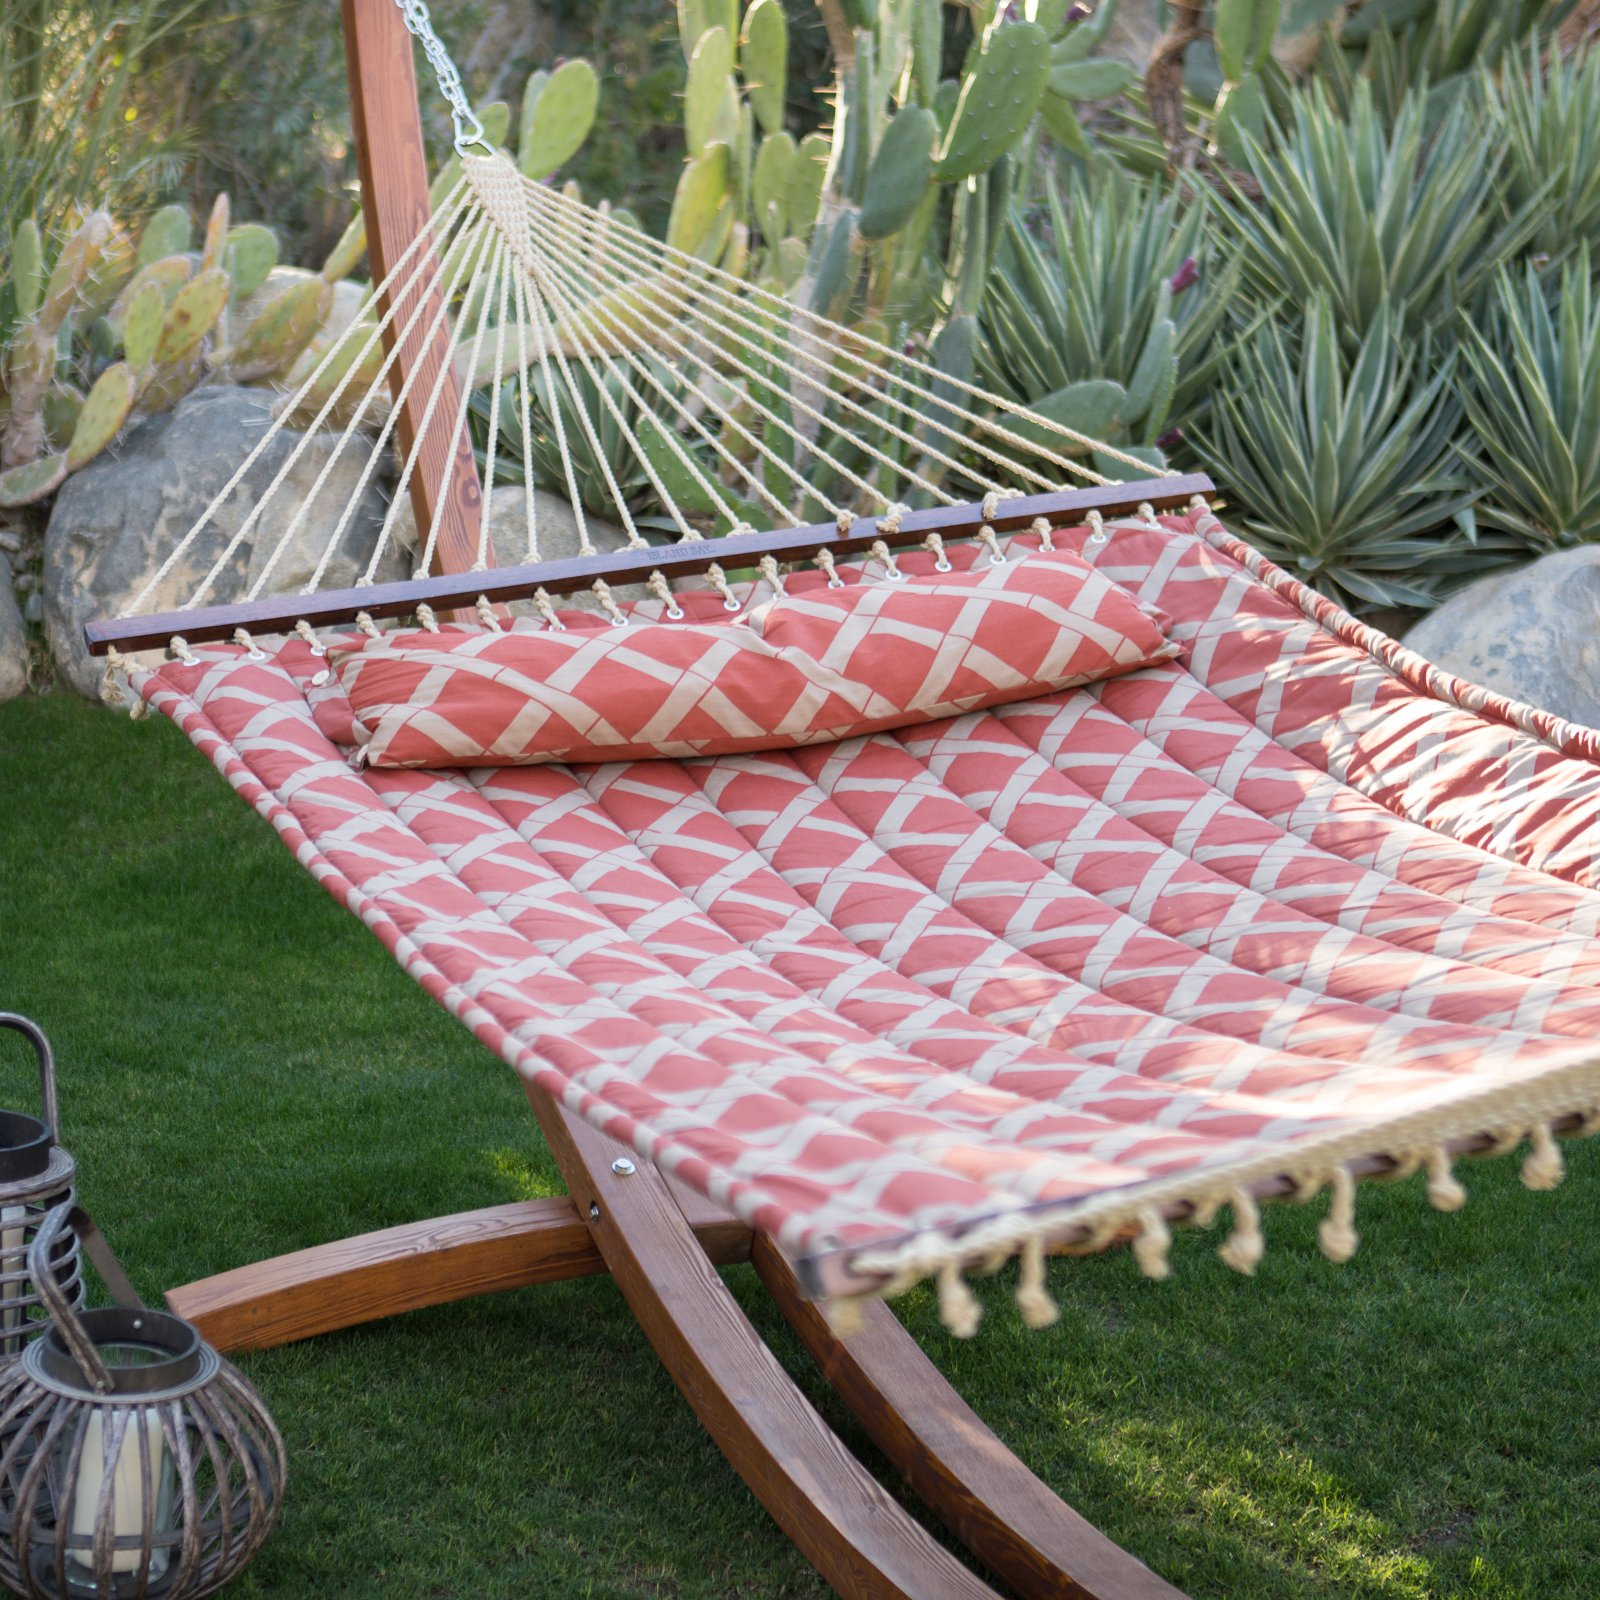 Island Bay 11 ft. Tuscan Lattice Quilted Hammock with Russian Pine Wood Arc Hammock Stand by